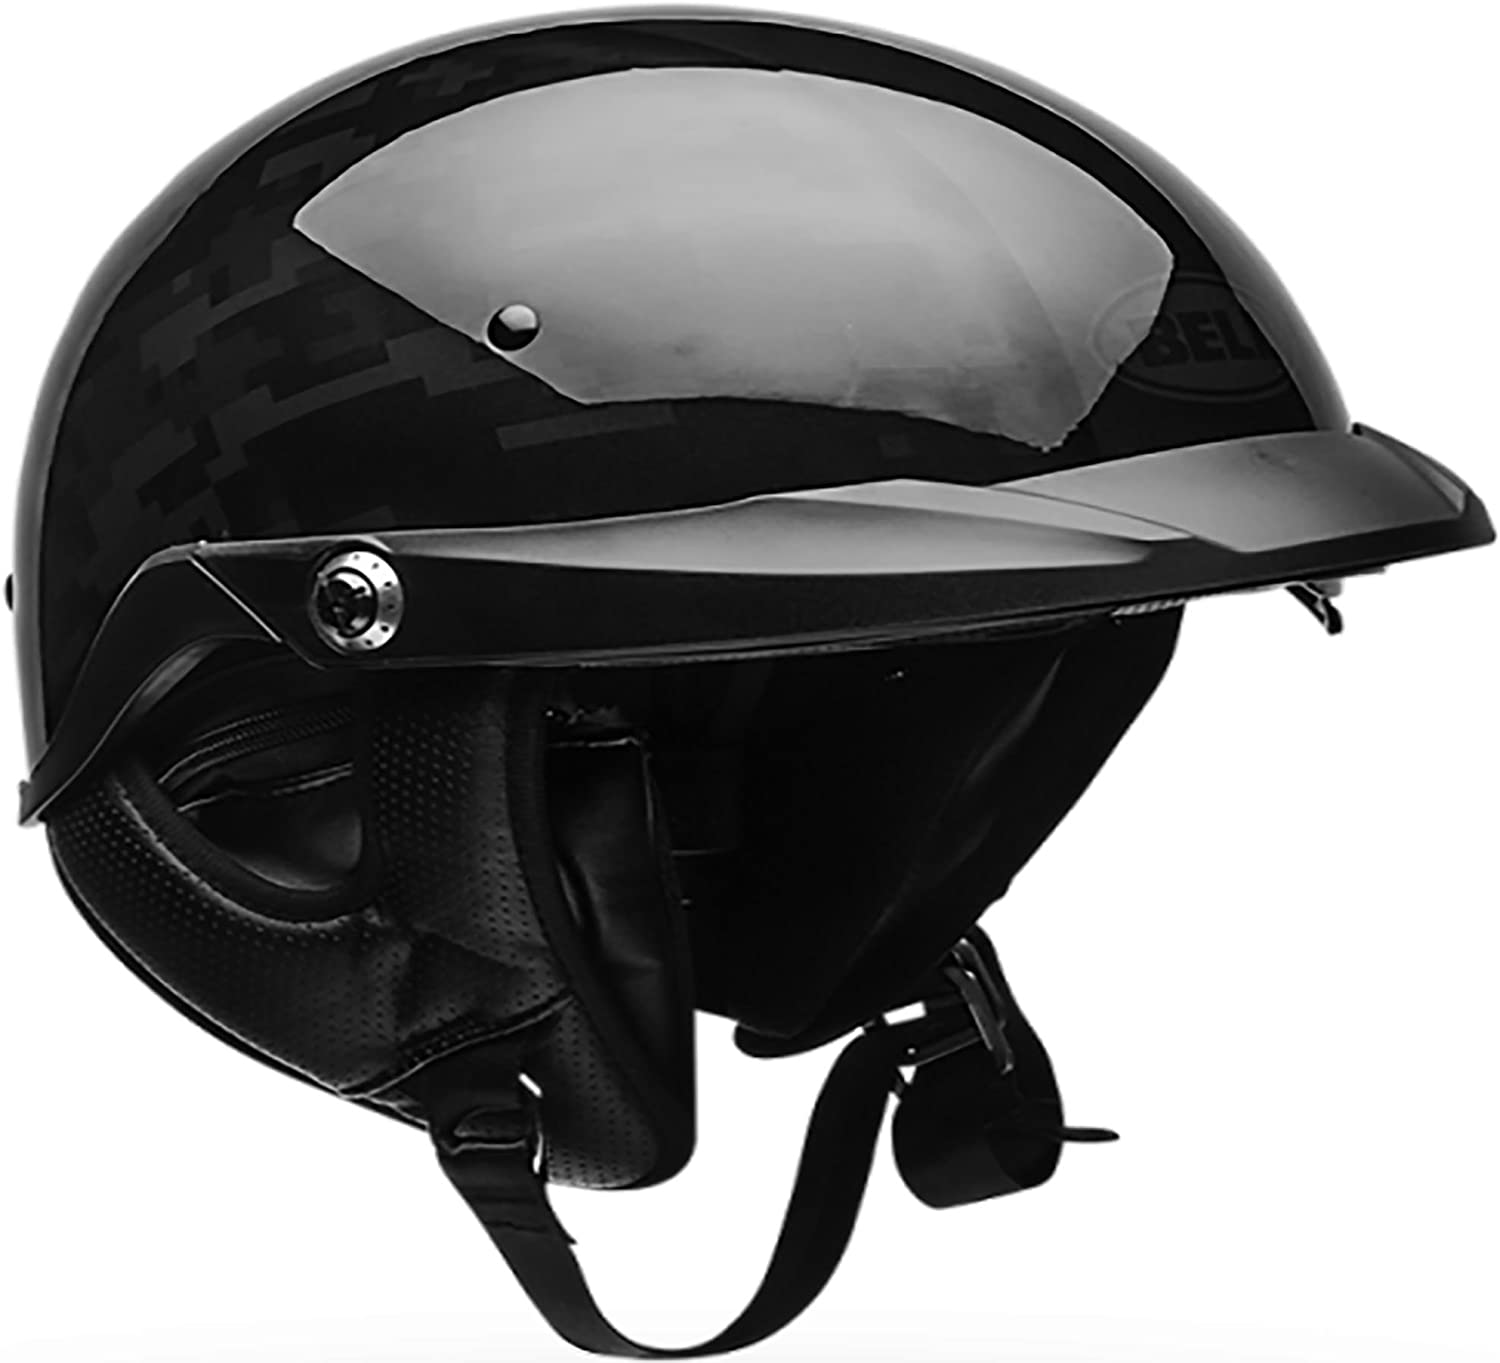 Bell Pit Boss Open-Face Motorcycle Helmet Black Ops Camo, X-Small//Small